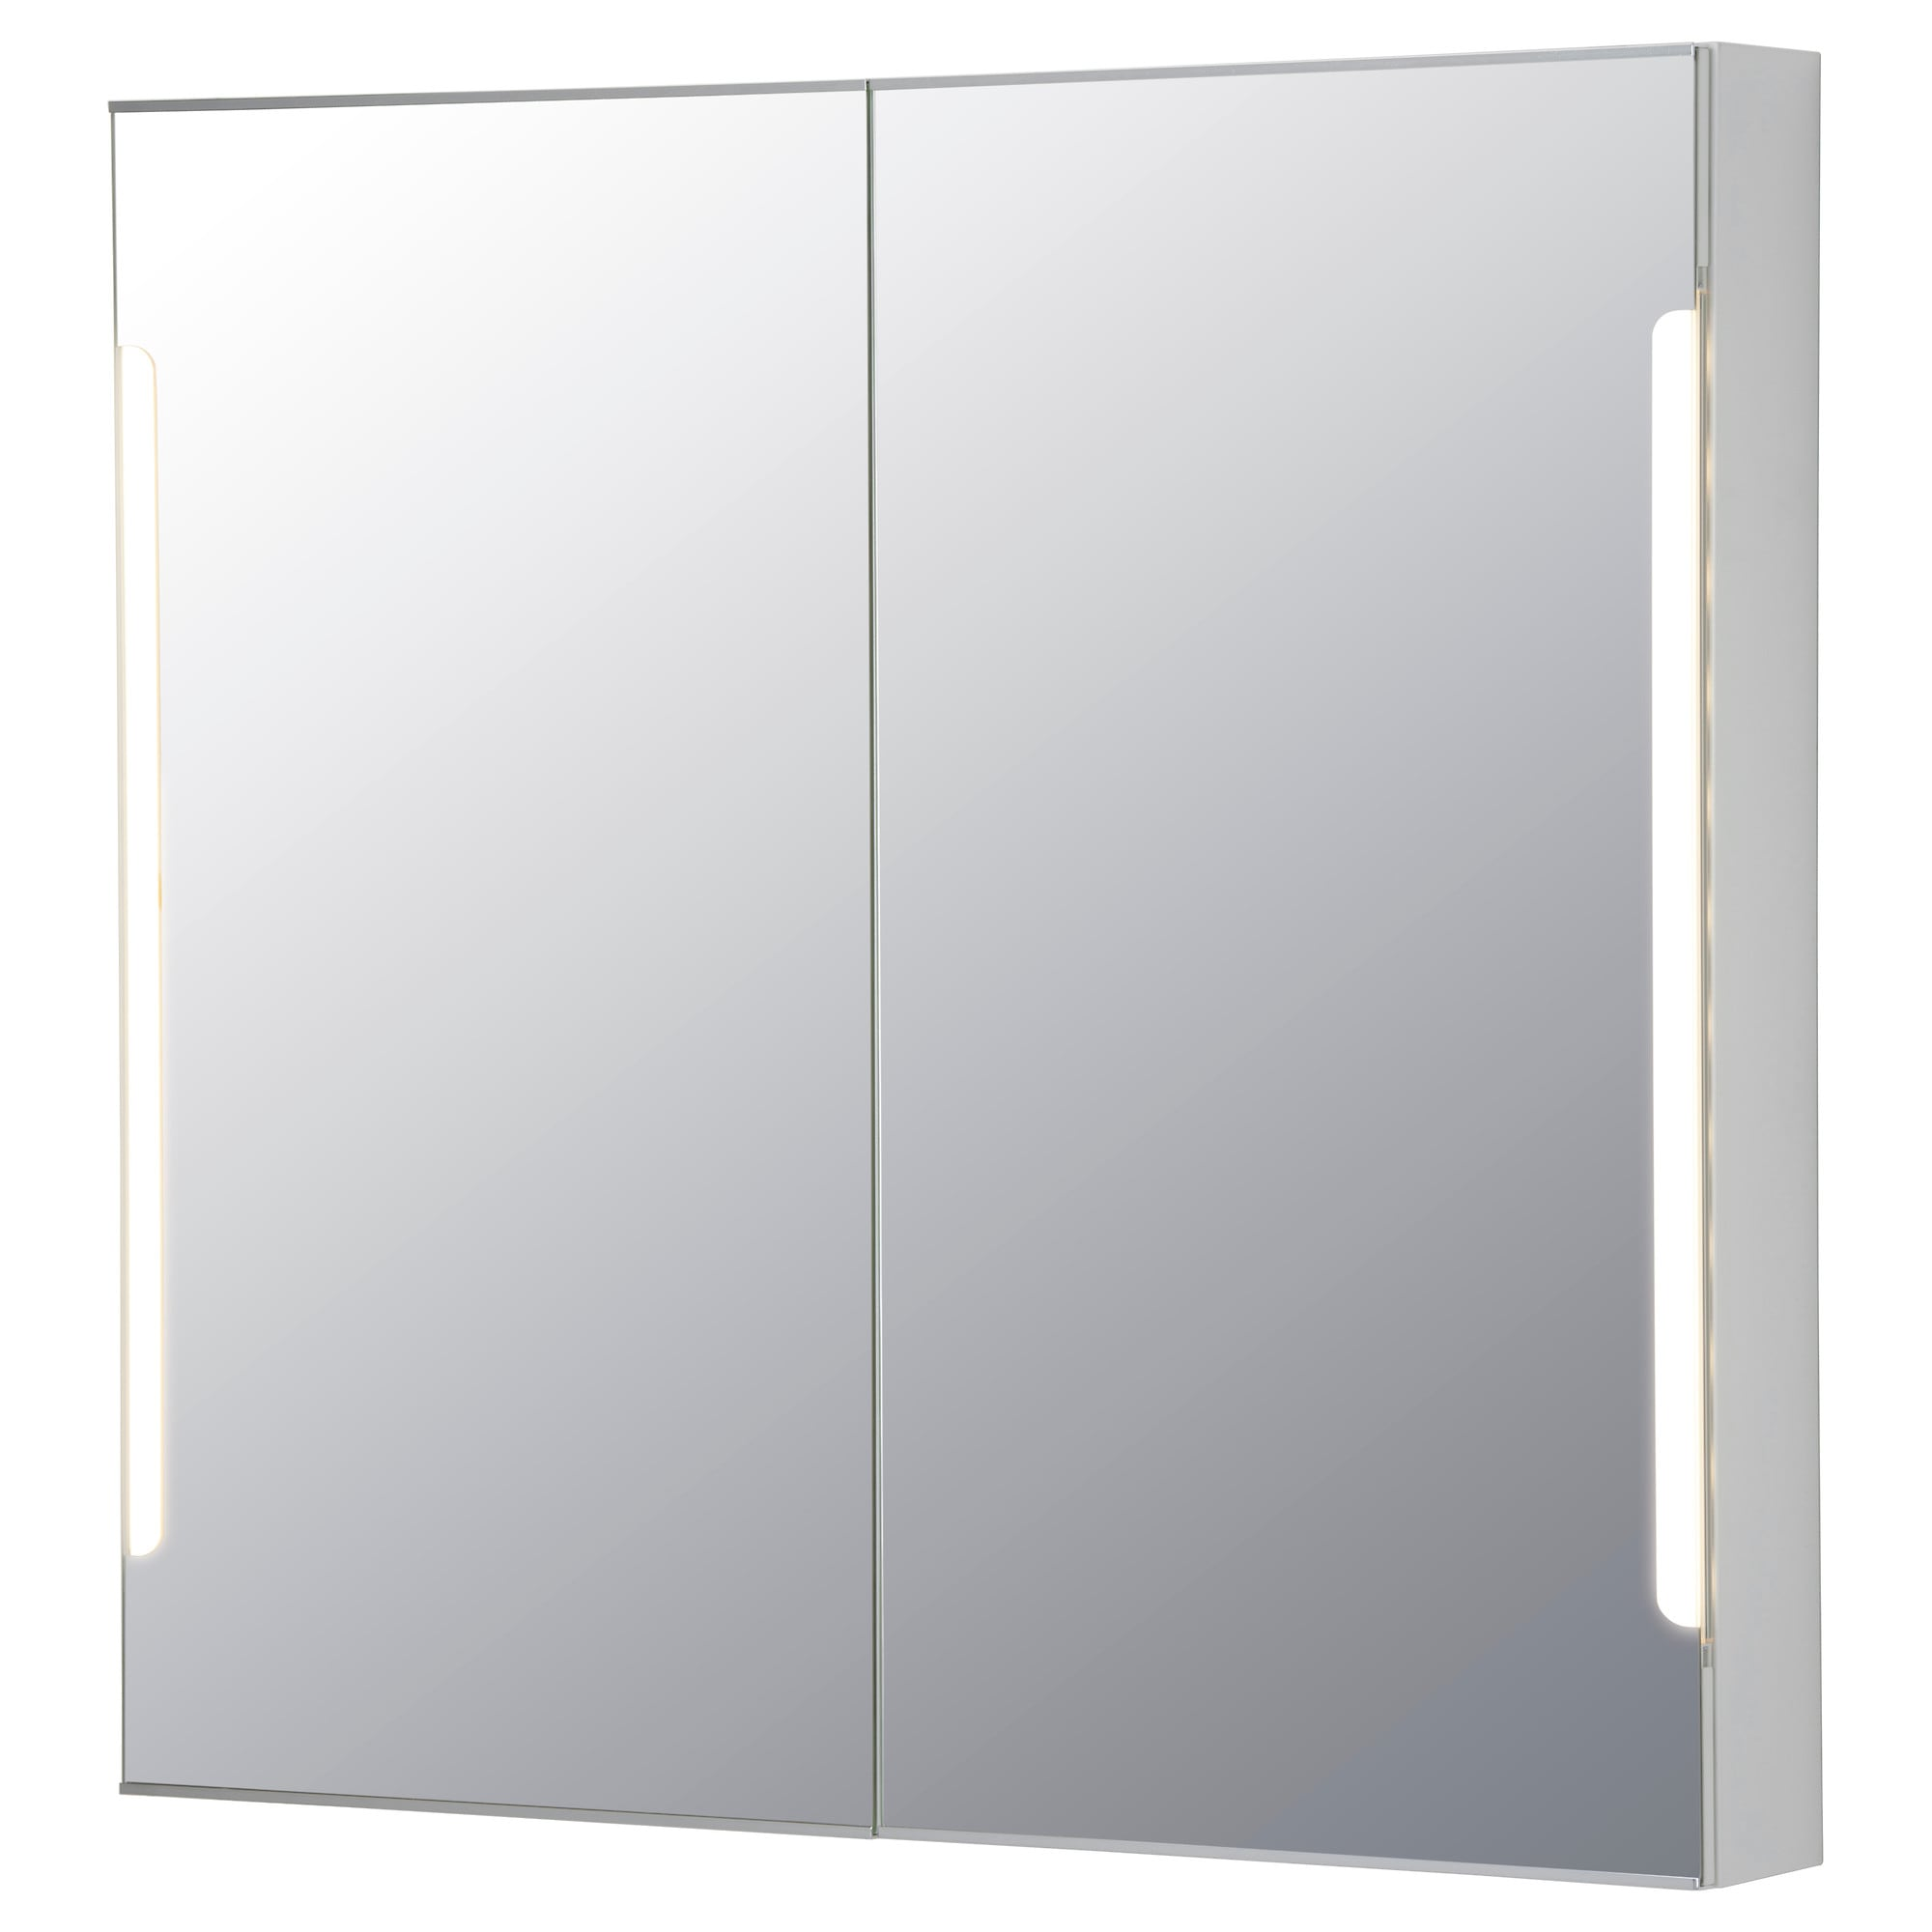 STORJORM Mirror Cabinet W 2 Doors Light